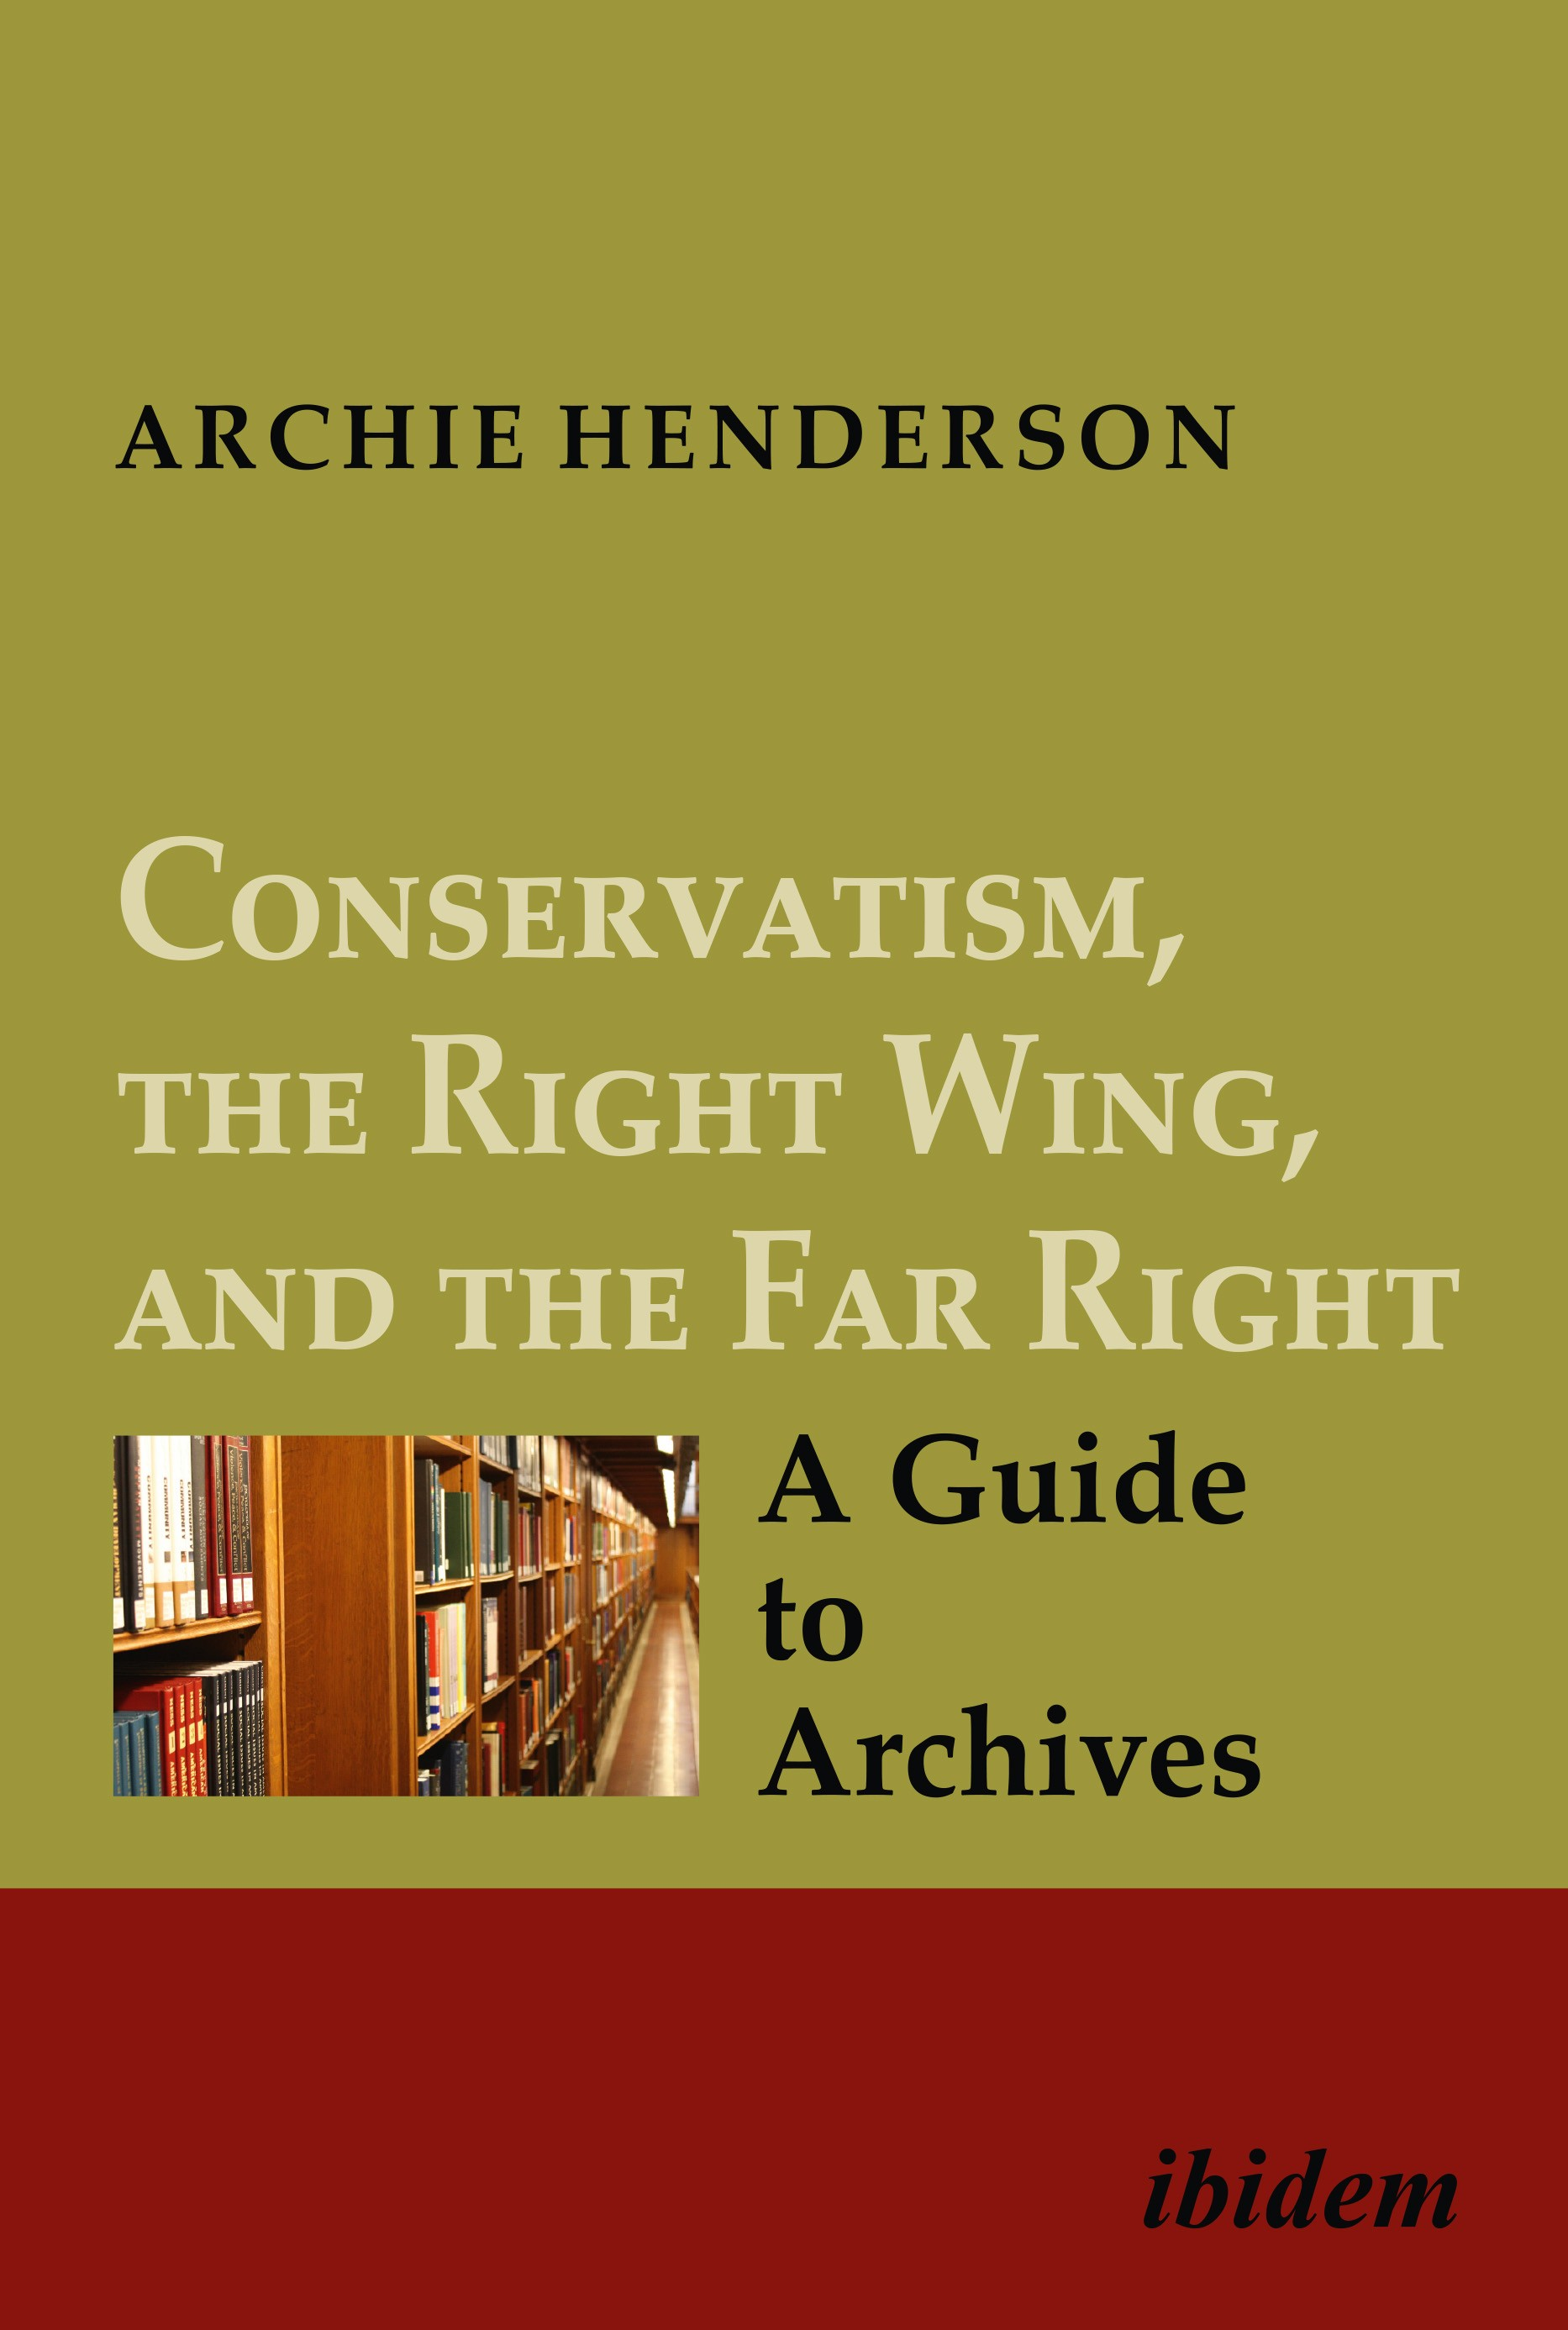 Conservatism, the Right Wing, and the Far Right: A Guide to Archives